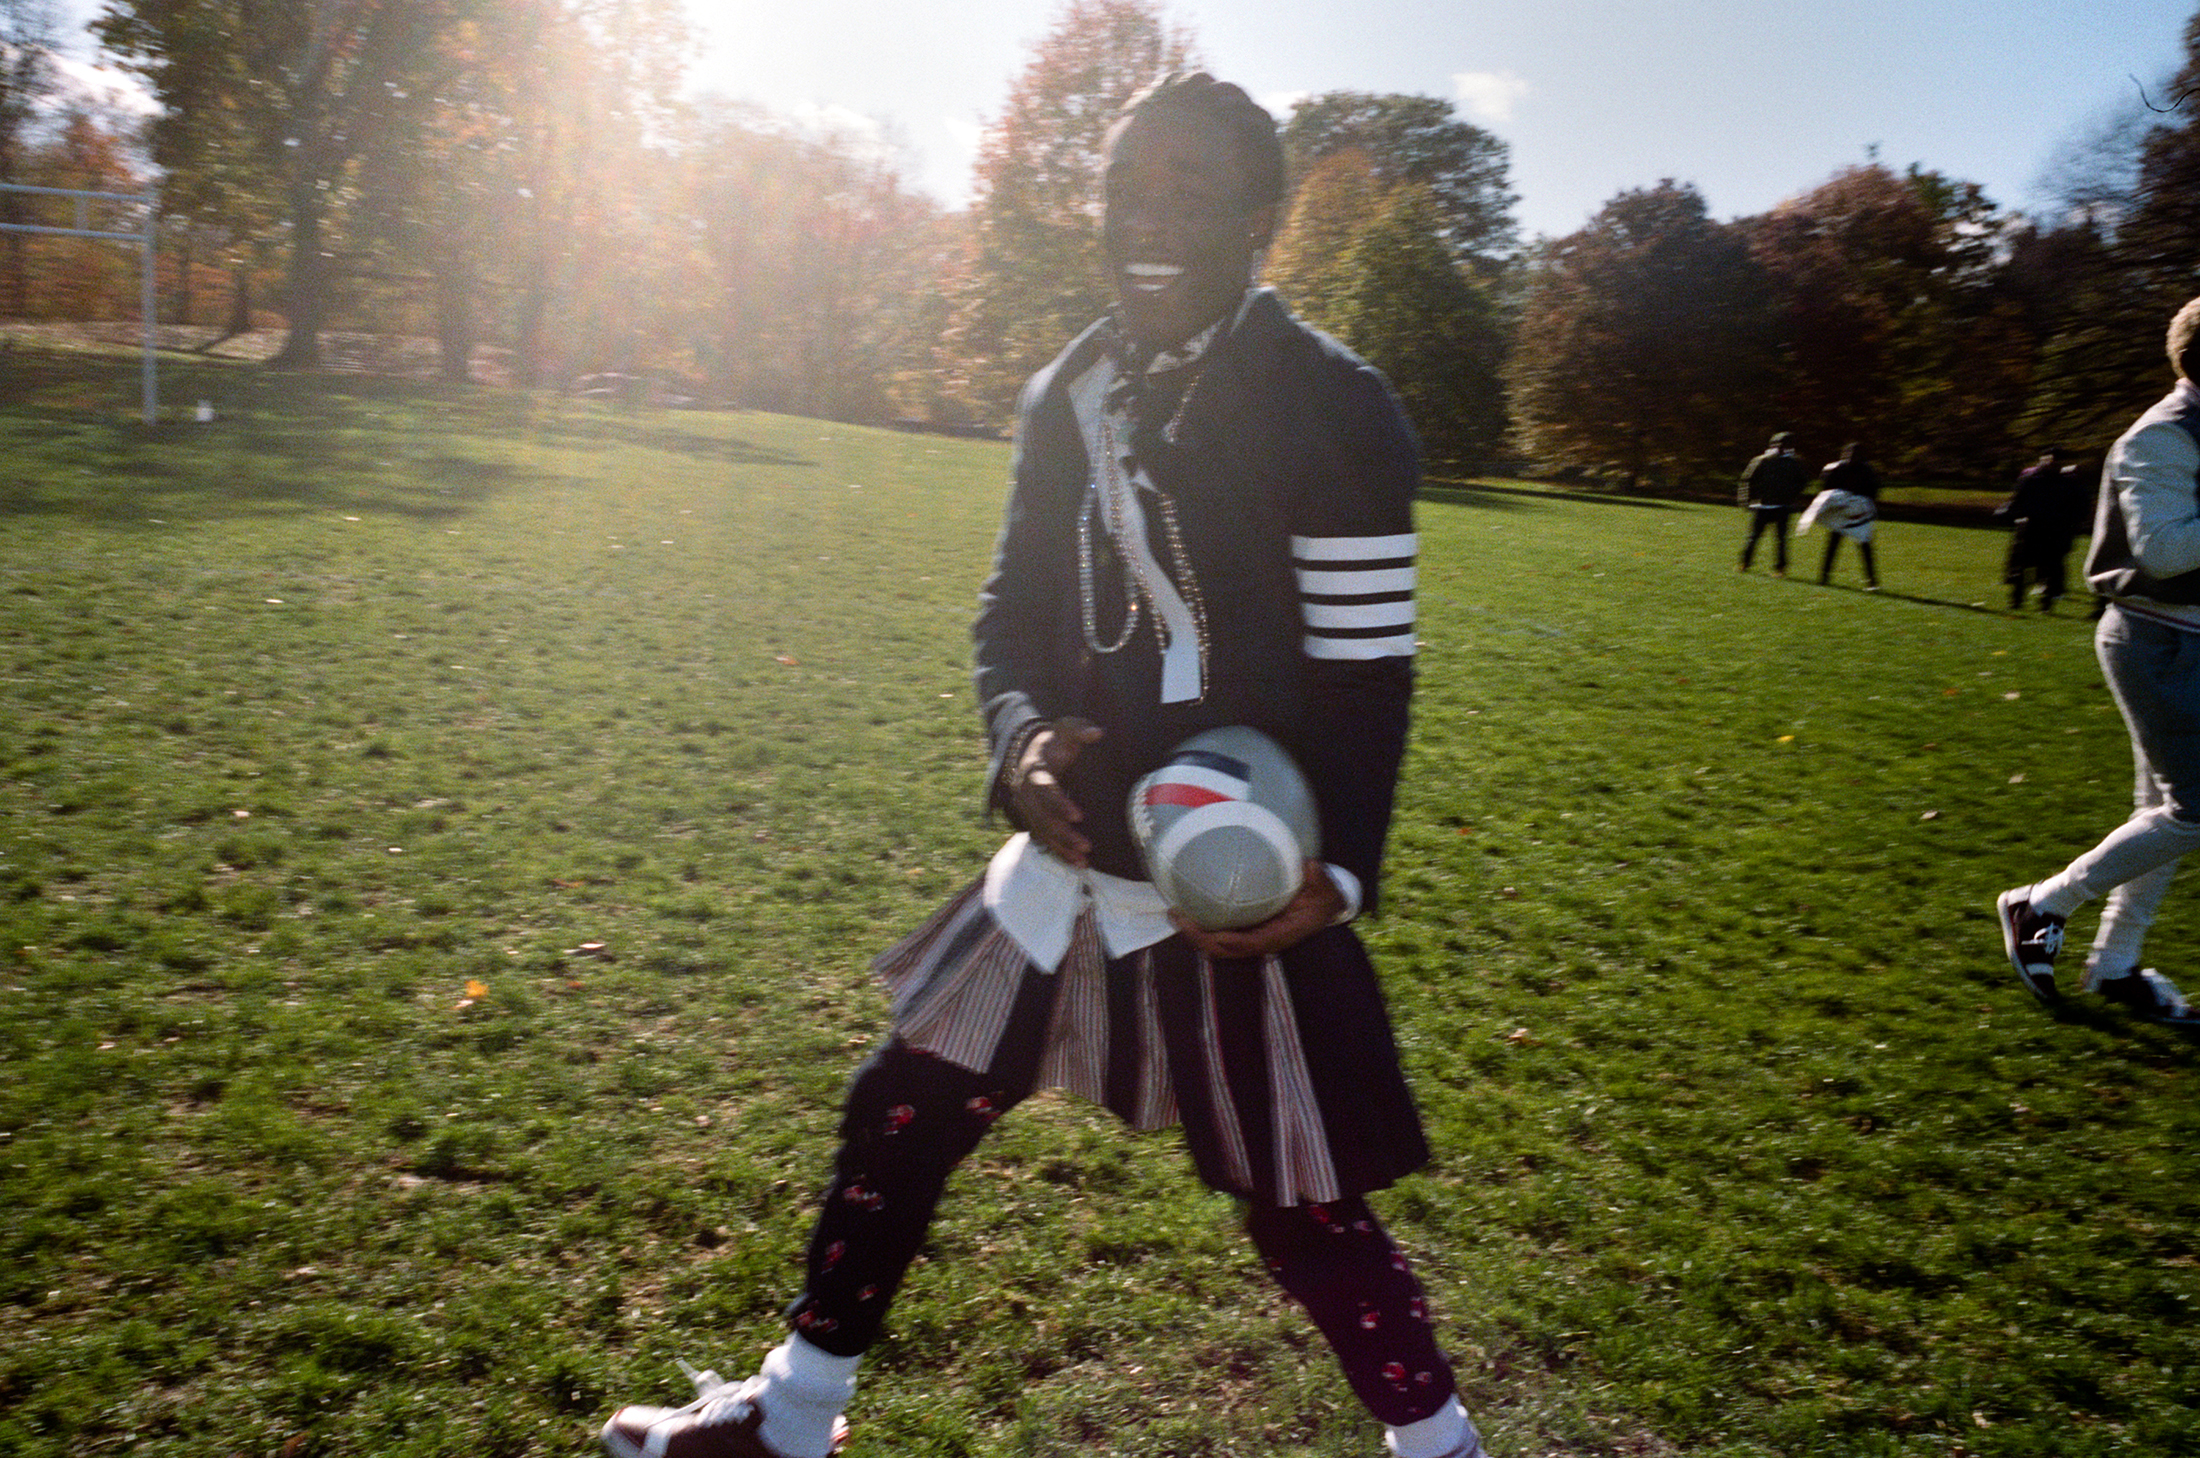 Thom Browne Football Game 2019 Pictures